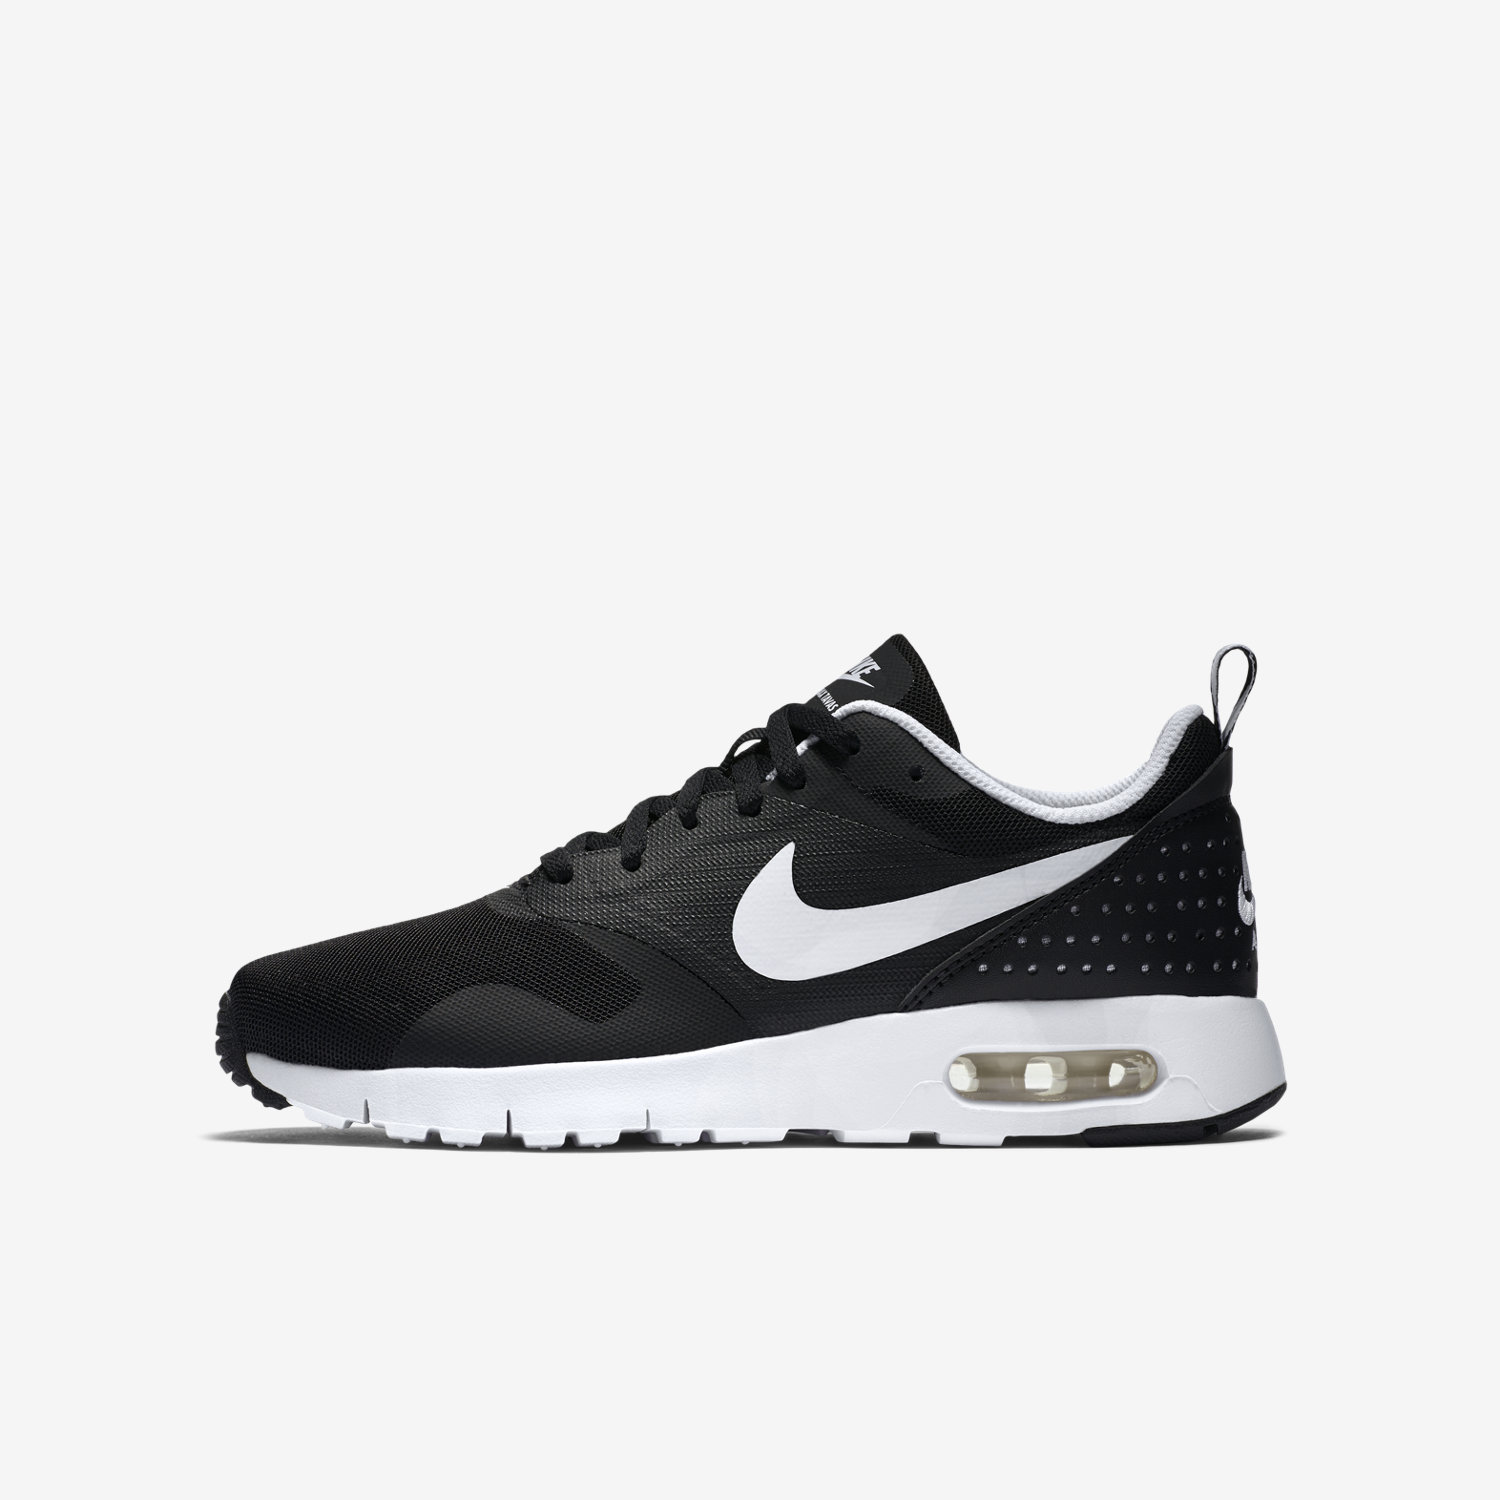 Airmax nike – All You want to know.